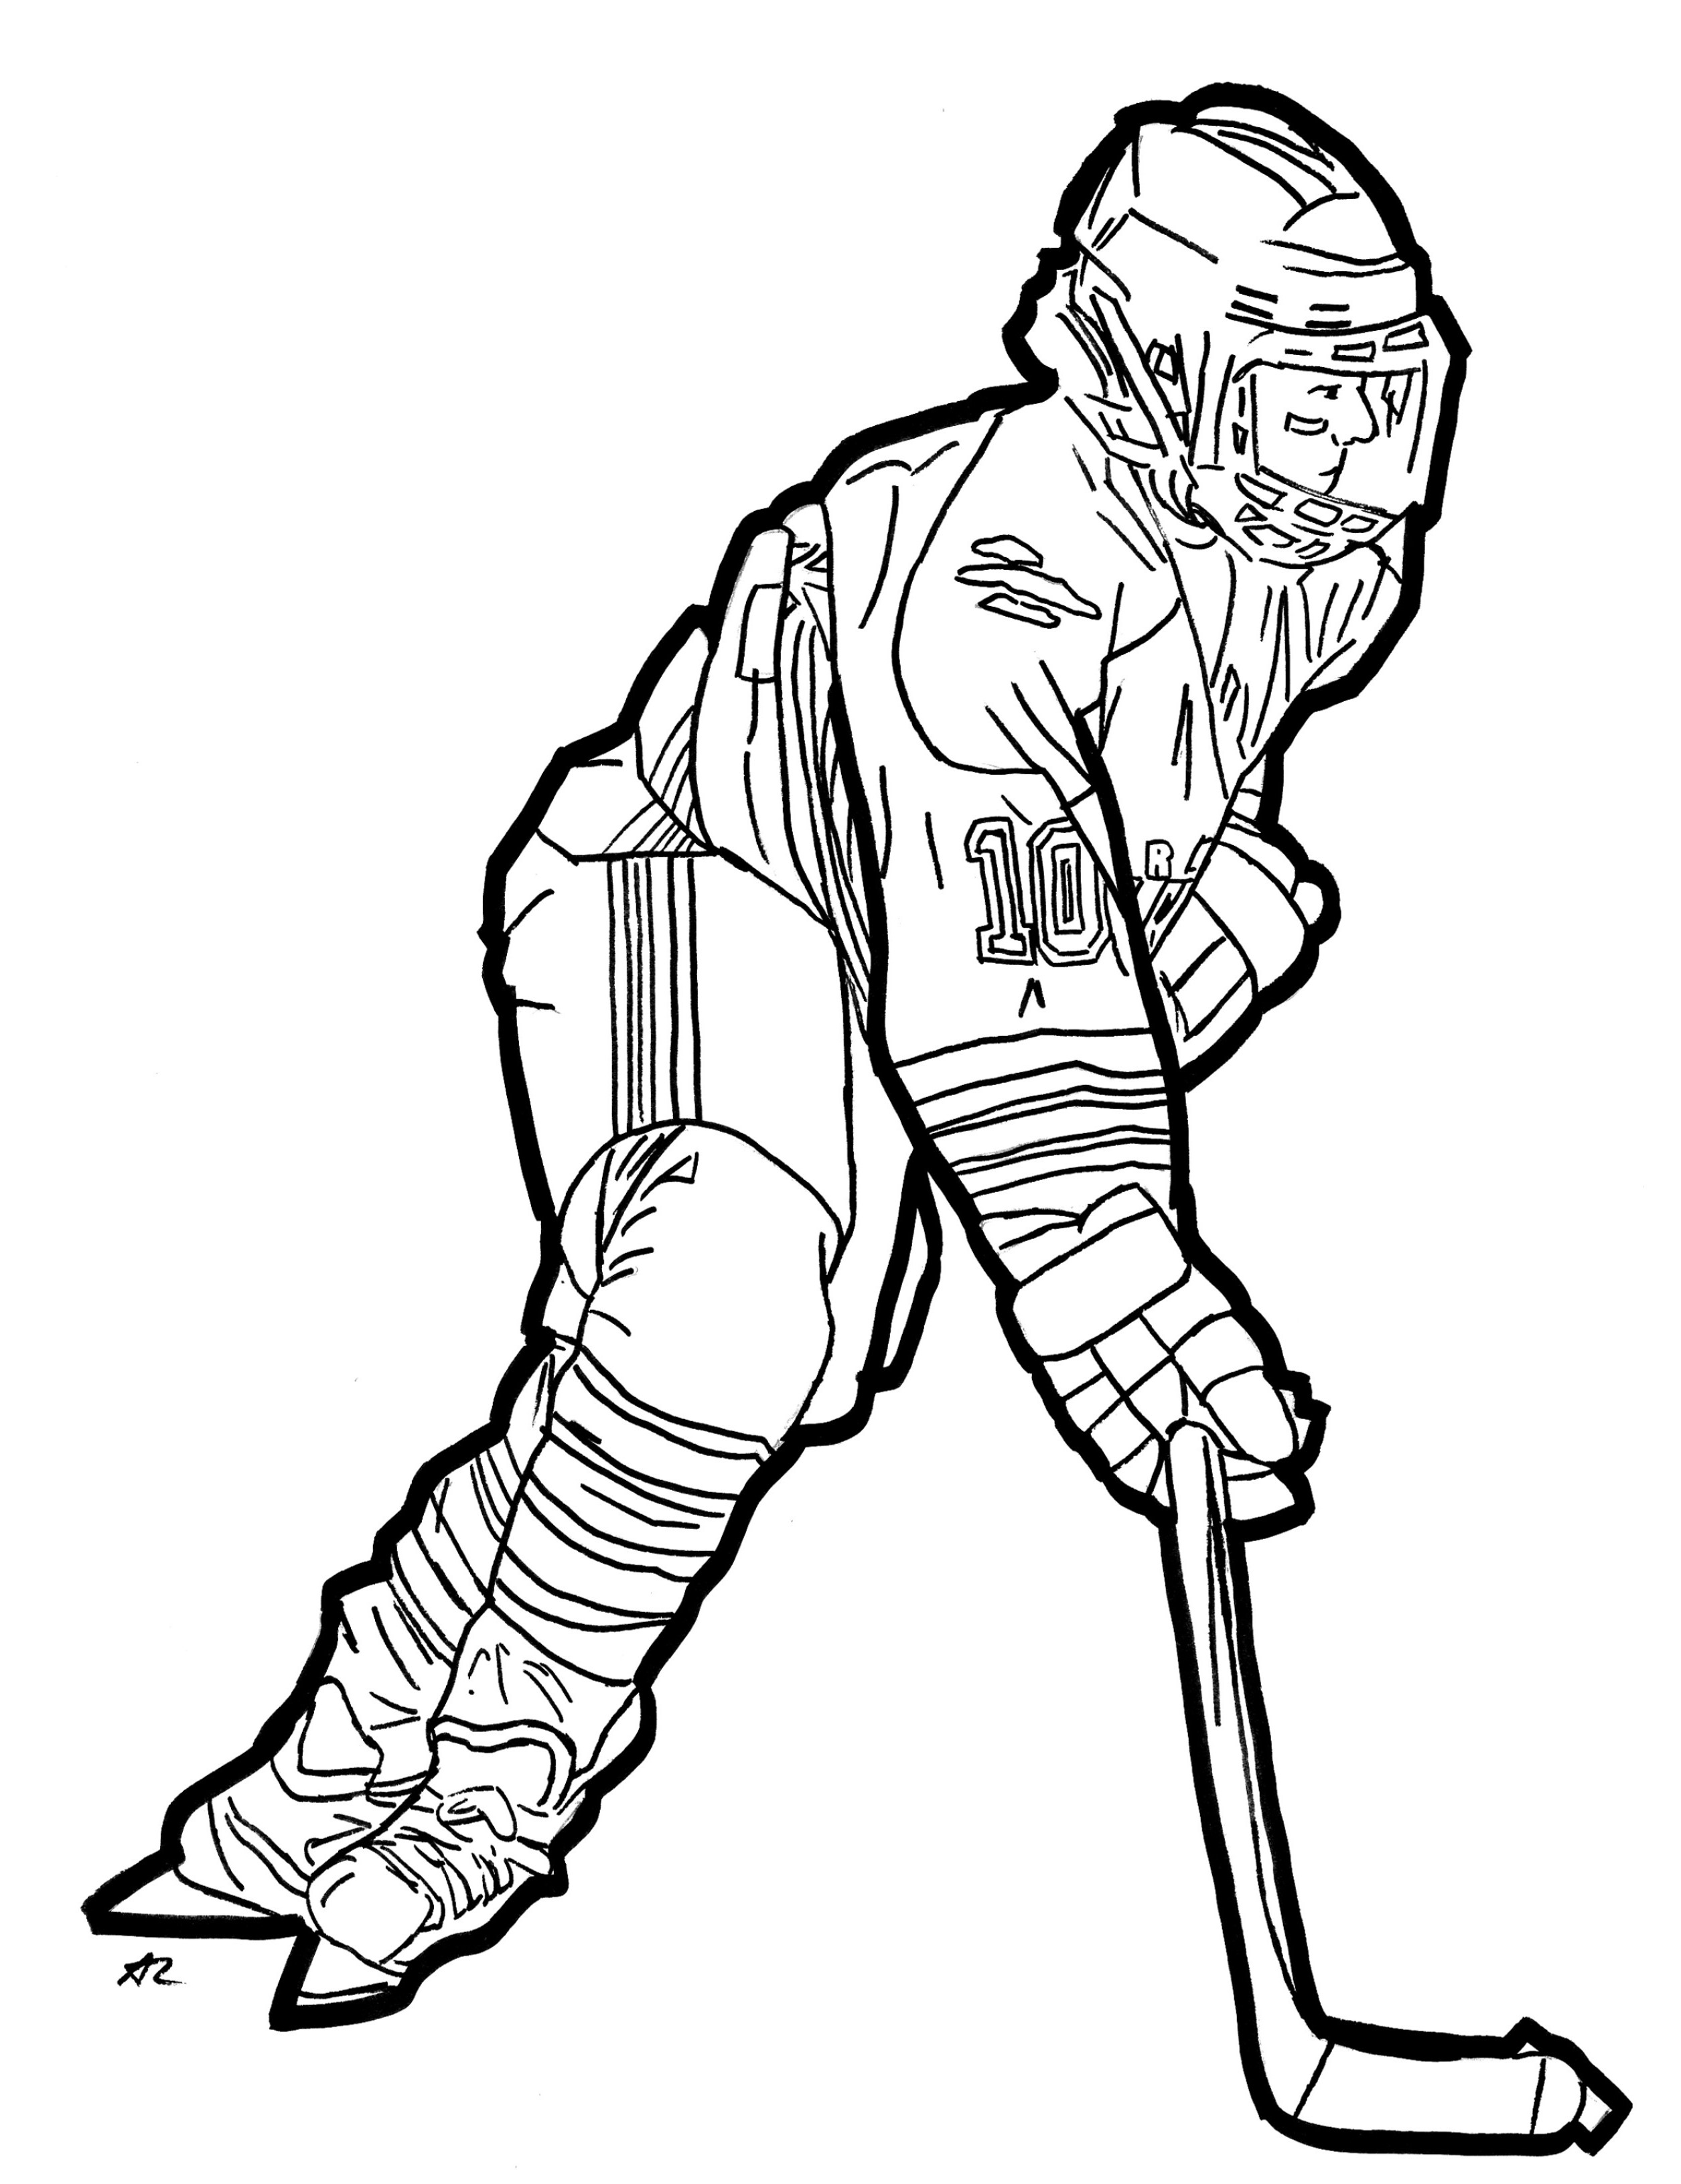 Hockey Colouring Book – A. Lubowitz